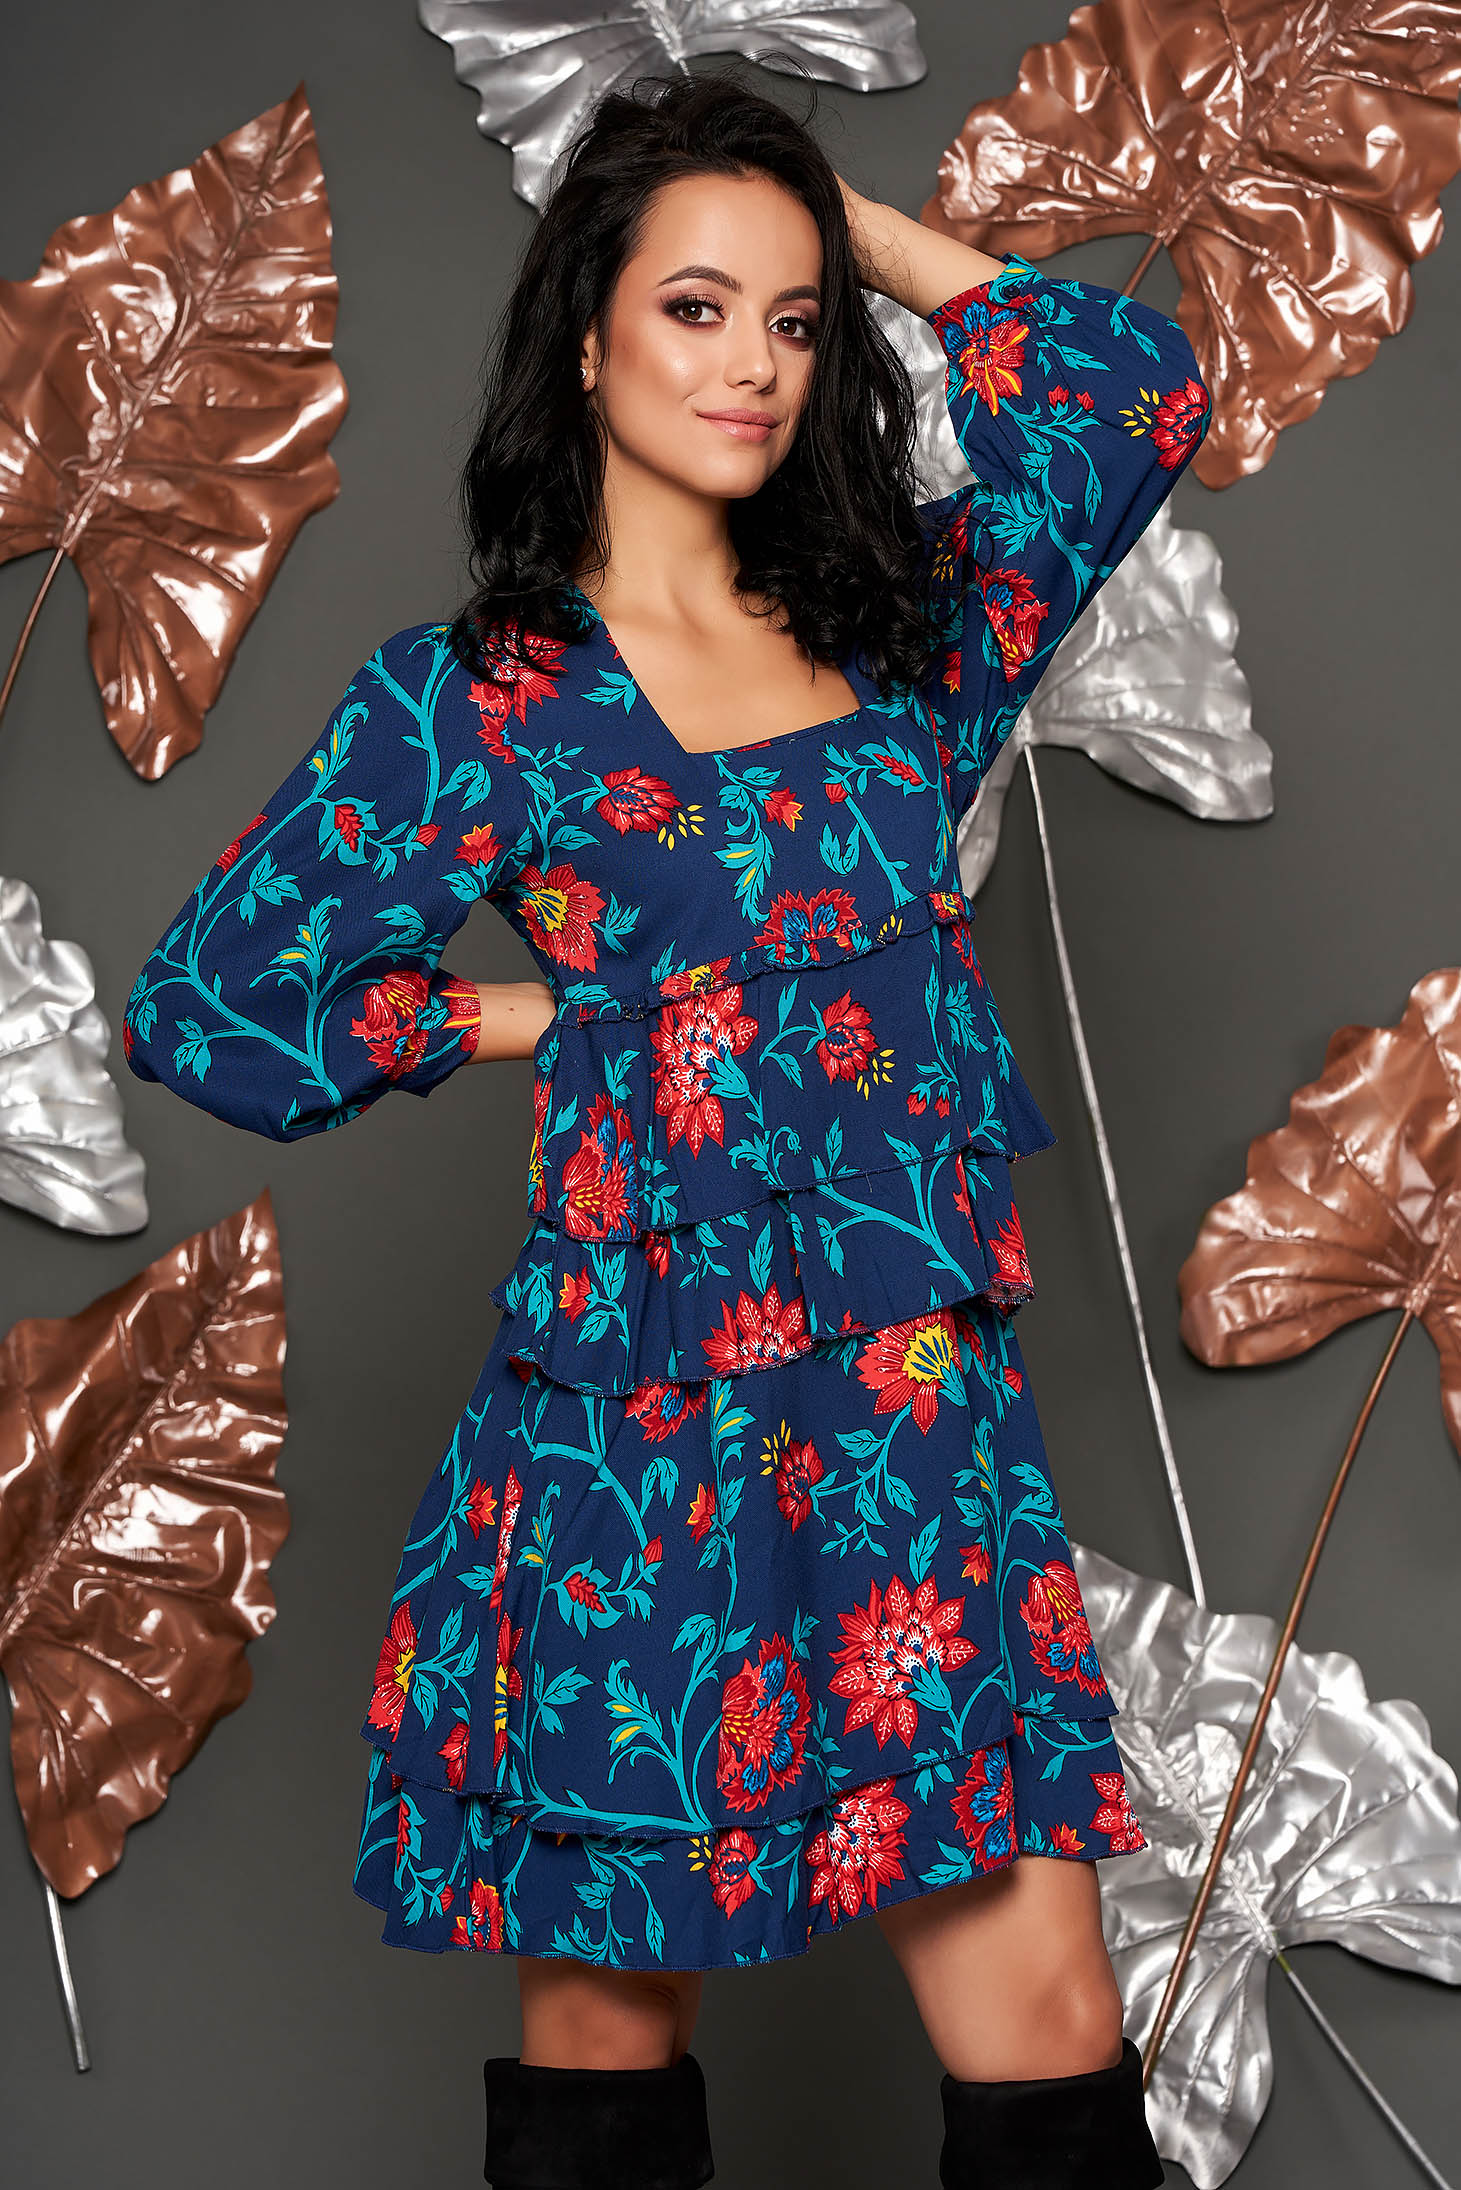 Darkblue dress casual flared airy fabric with ruffle details with floral prints